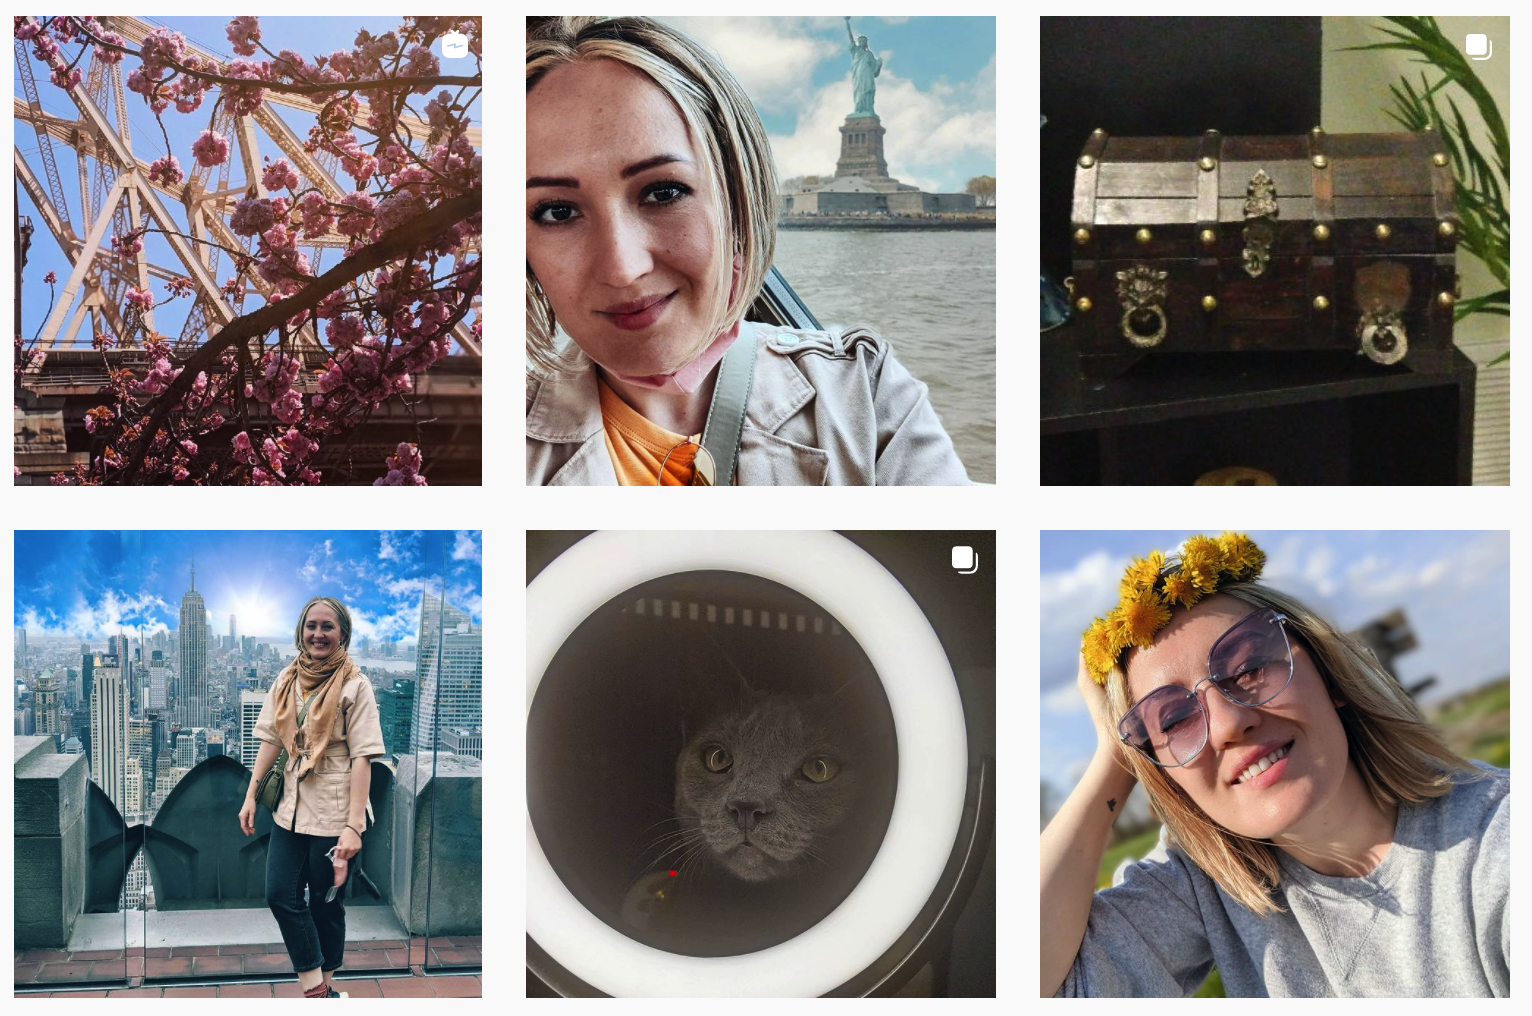 Tina Martyniuk | Instagram Lifestyle Influencers Featured on Afluencer